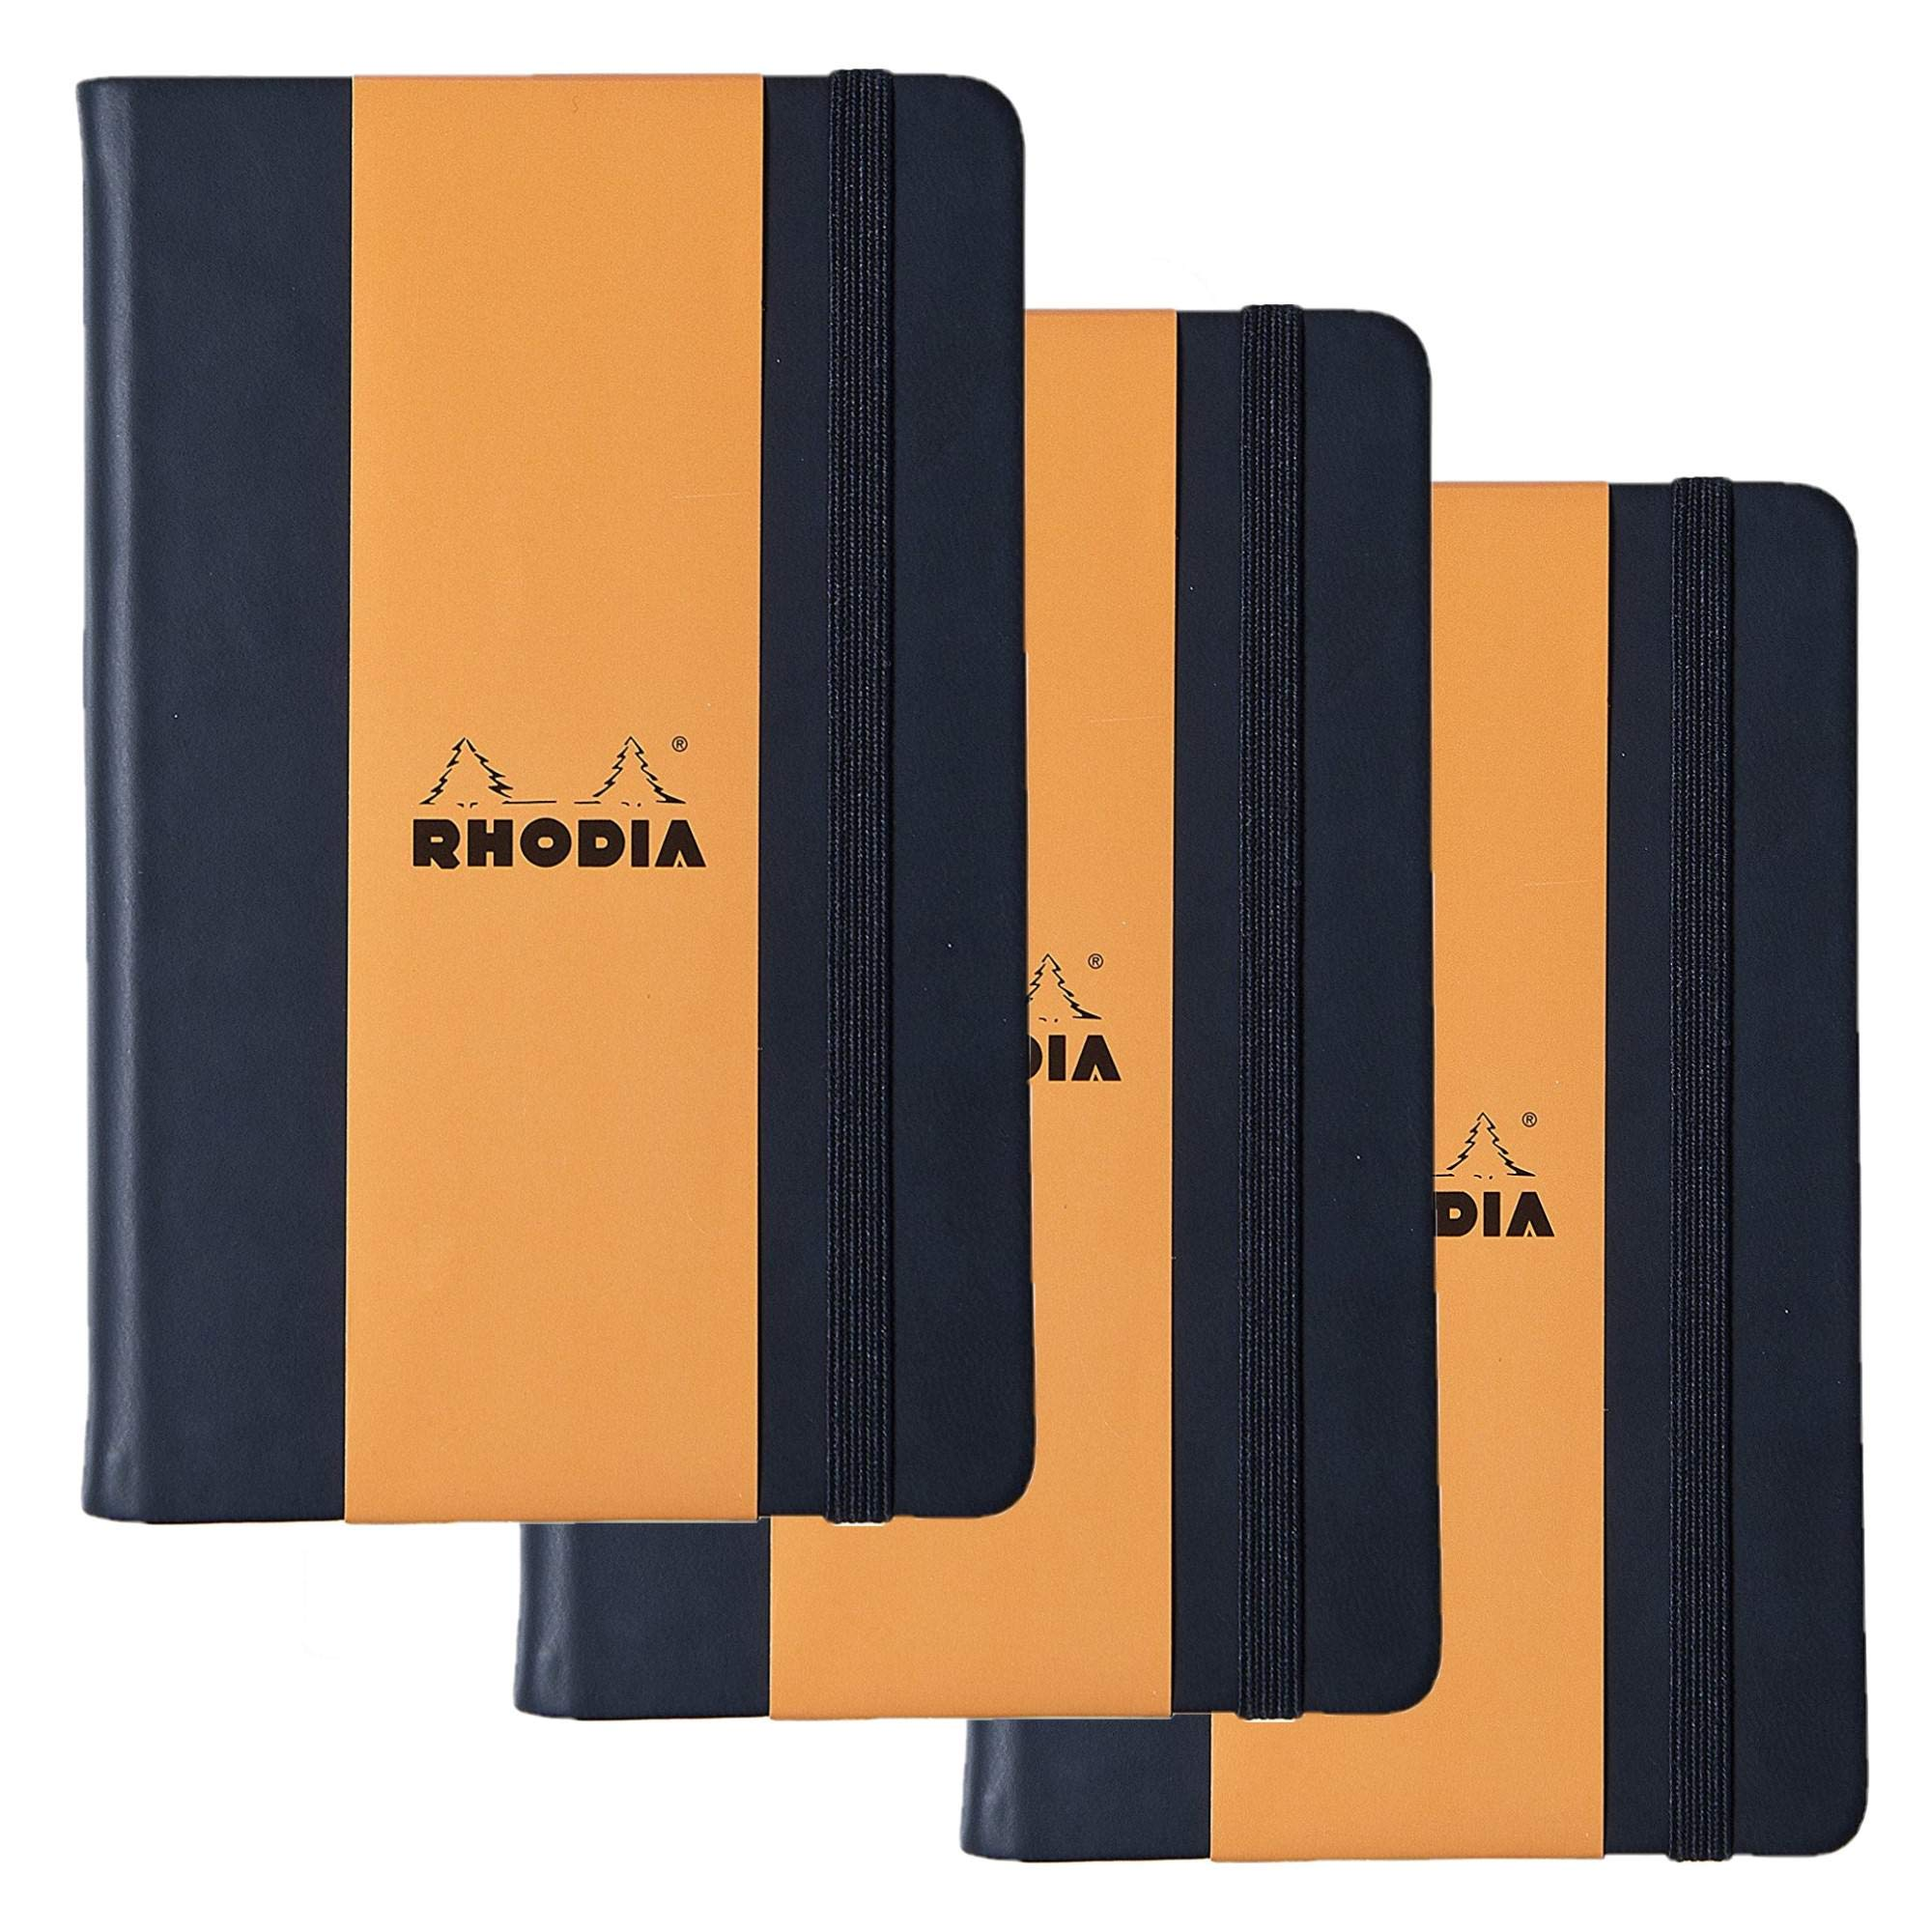 Rhodia Webnotebook Webbies - Lined 96 sheets - 5 1/2 x 8 1/4 - Black cover